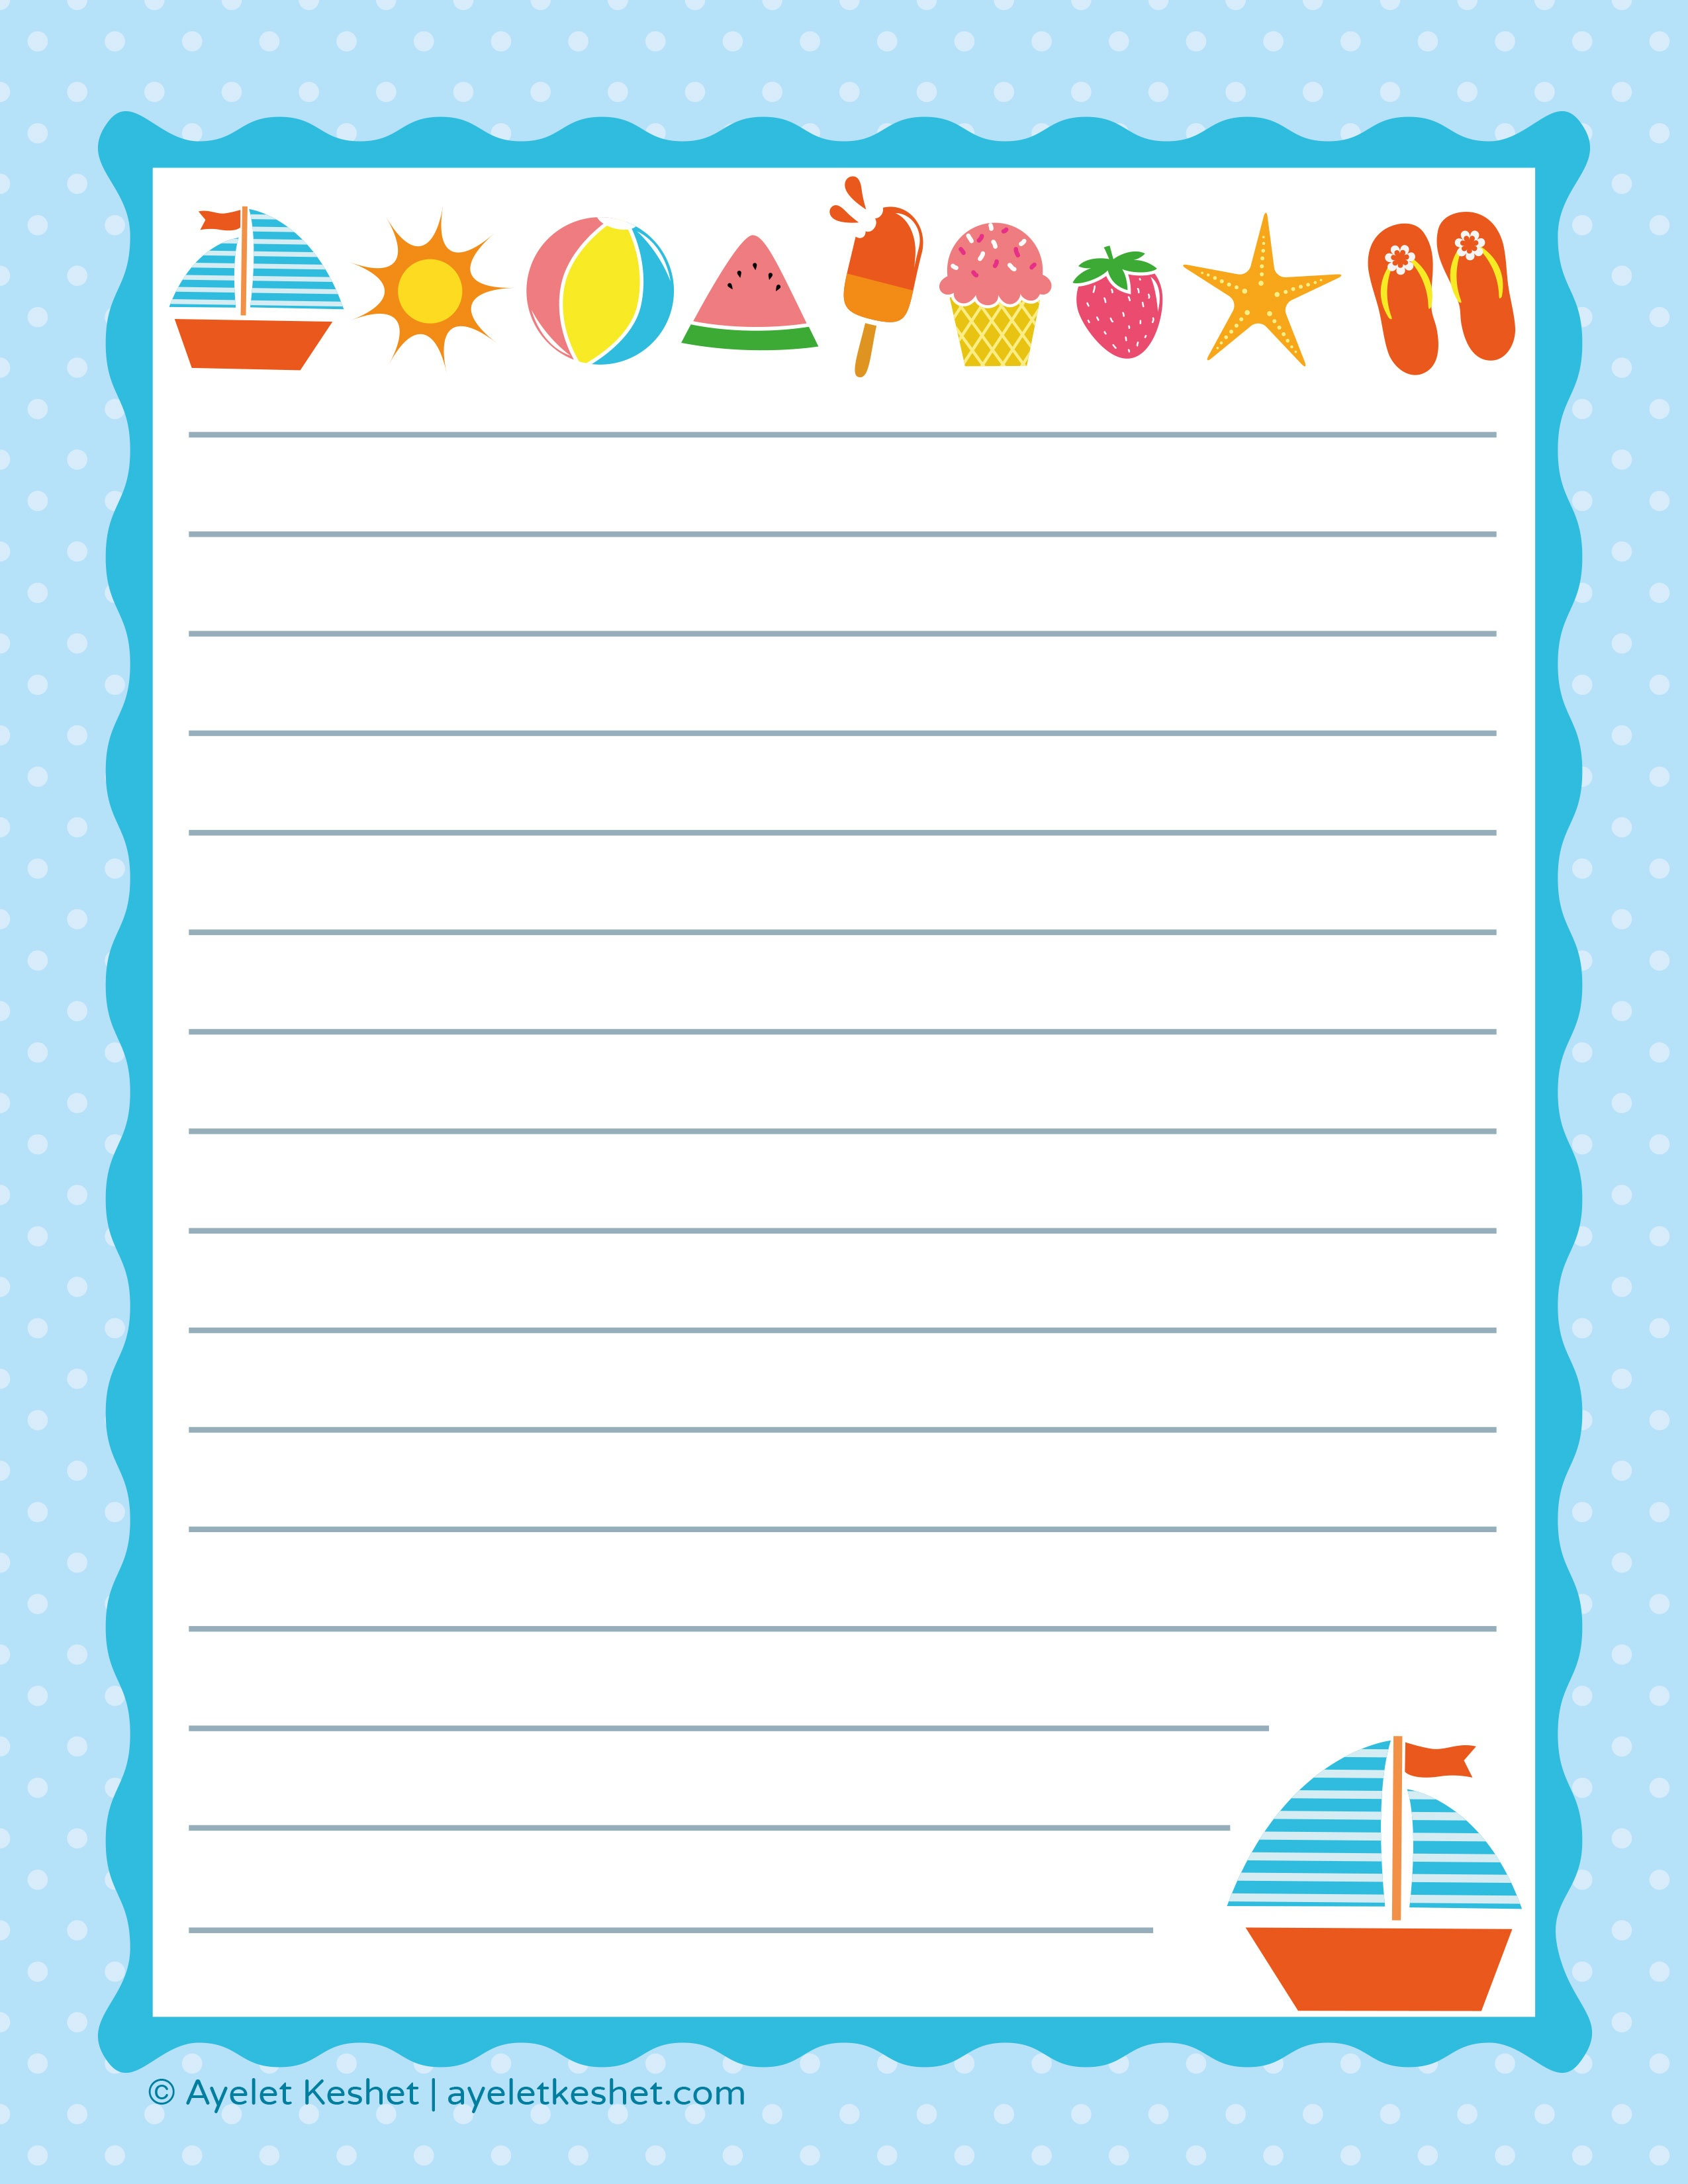 Free Printable Letter Paper - Ayelet Keshet - Free Printable Writing Paper For Adults